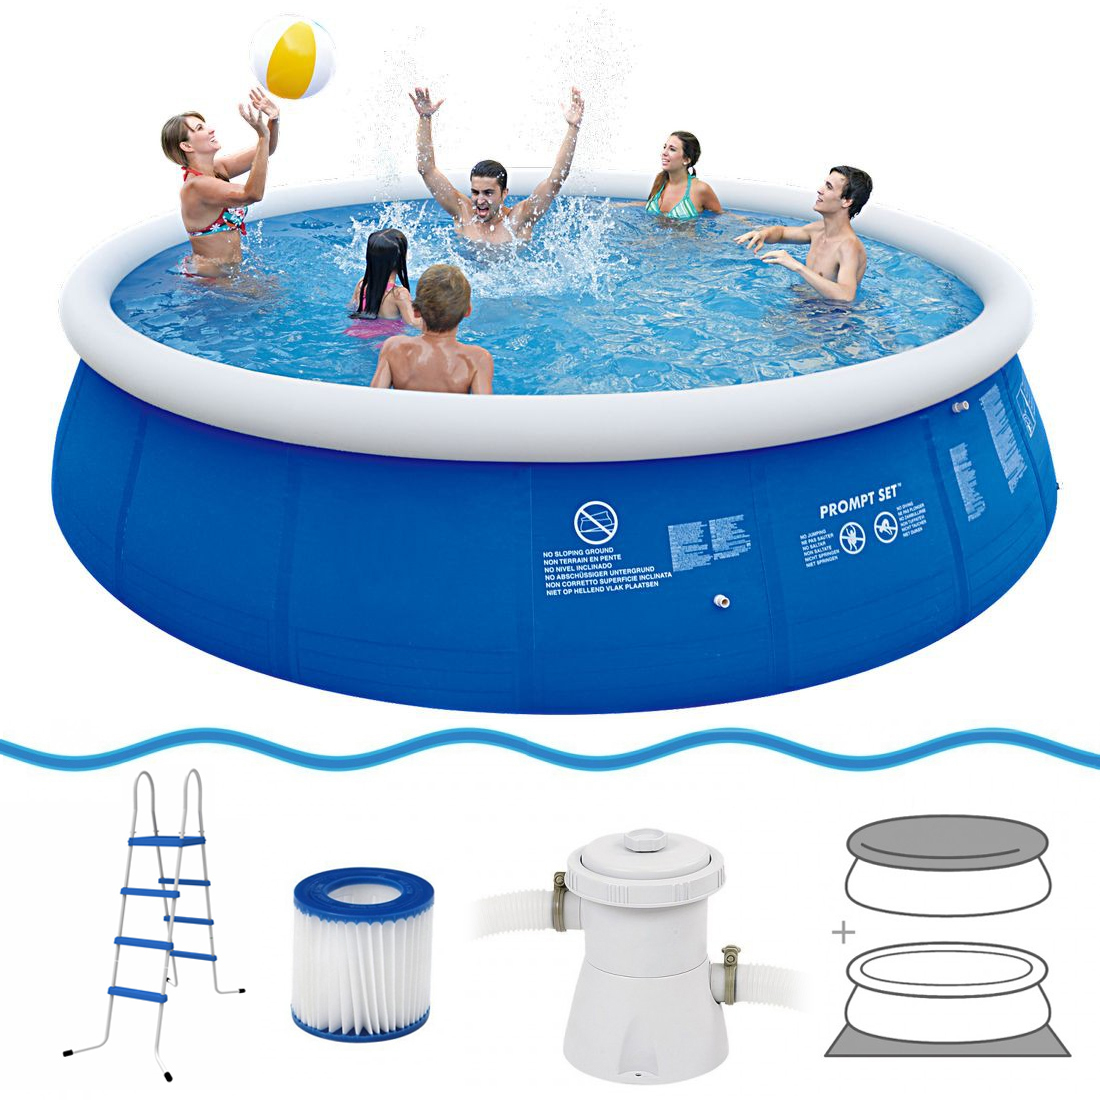 Quick Pool Abdeckplane Jilong Marin Blue 540 Set Quick Up Pool Set 540x122cm Mit Filterpumpe Und Kartusche Leiter Boden Und Abdeckplane Wassersport Pools Pools